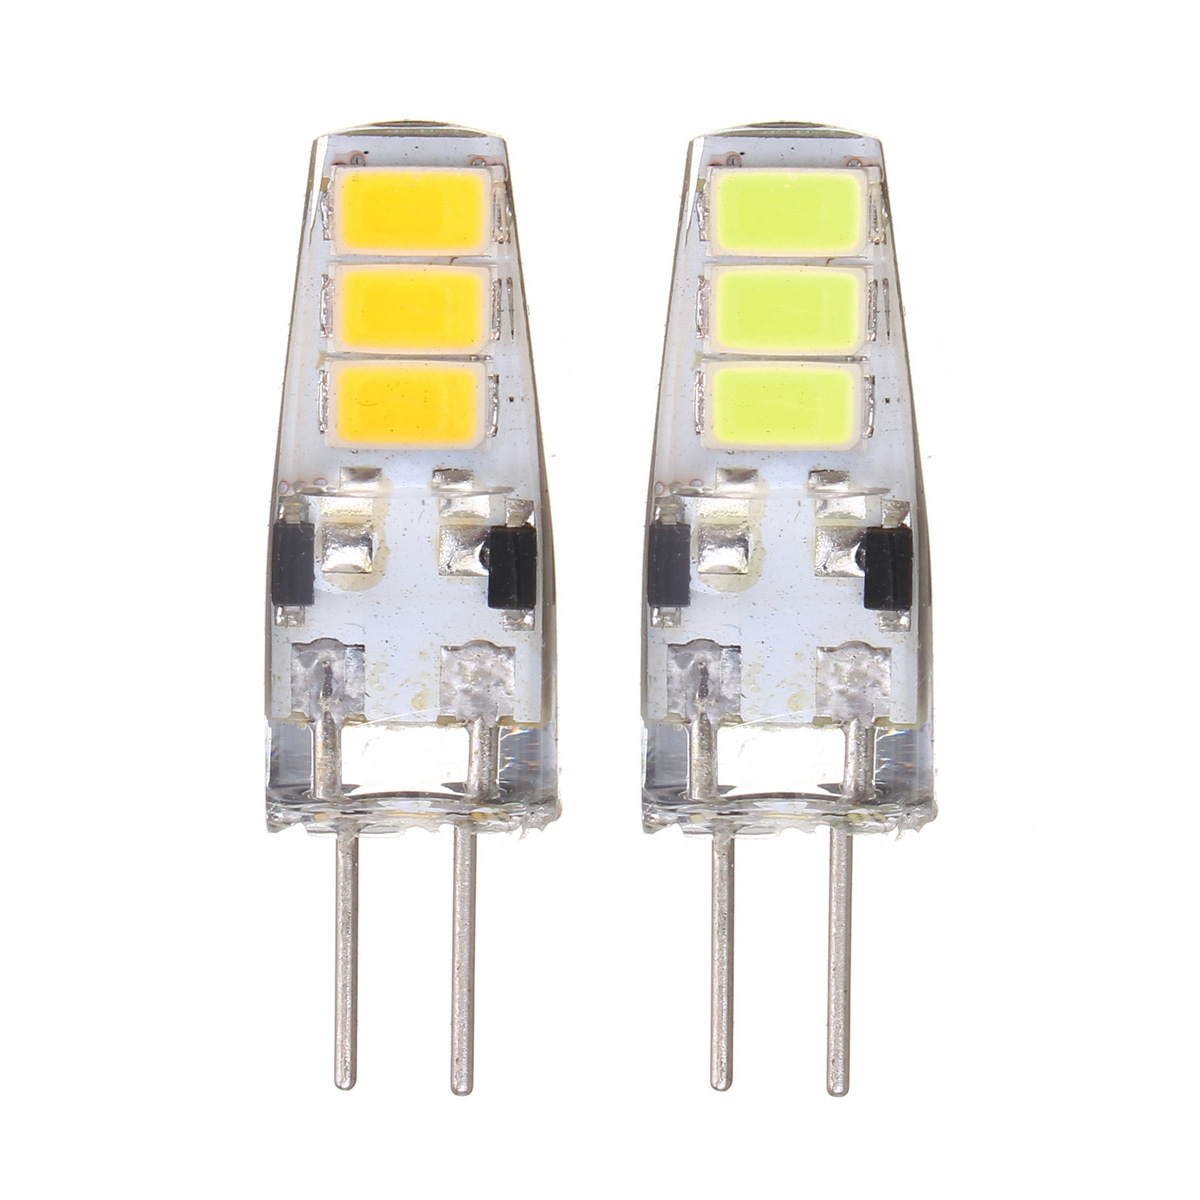 10X G4 2W SMD5733 6LEDs Pure White Warm White Silicone Light Bulb DC12V